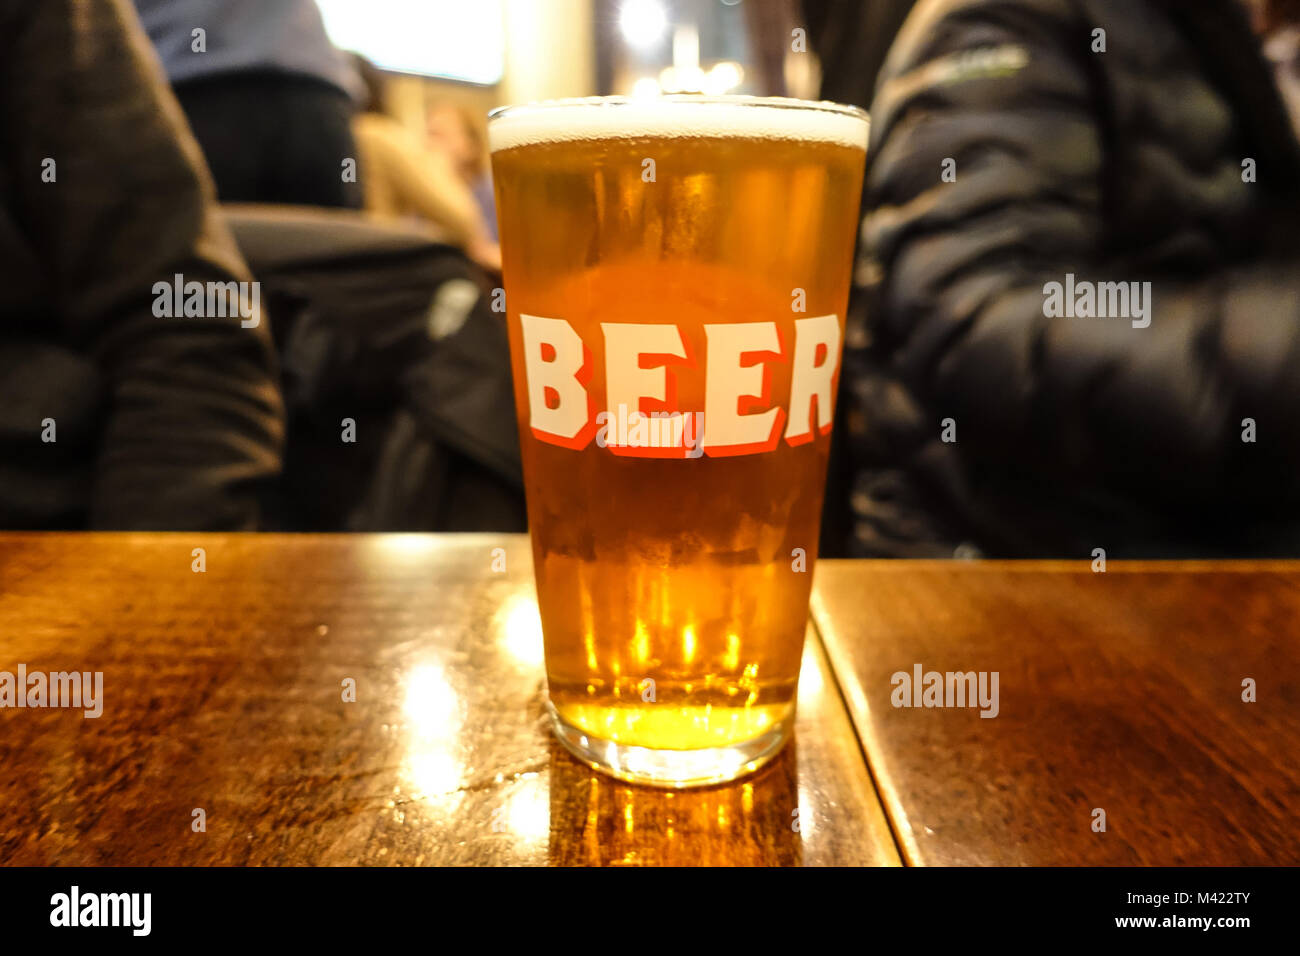 close-up-view-of-a-pint-of-beer-M422TY.jpg